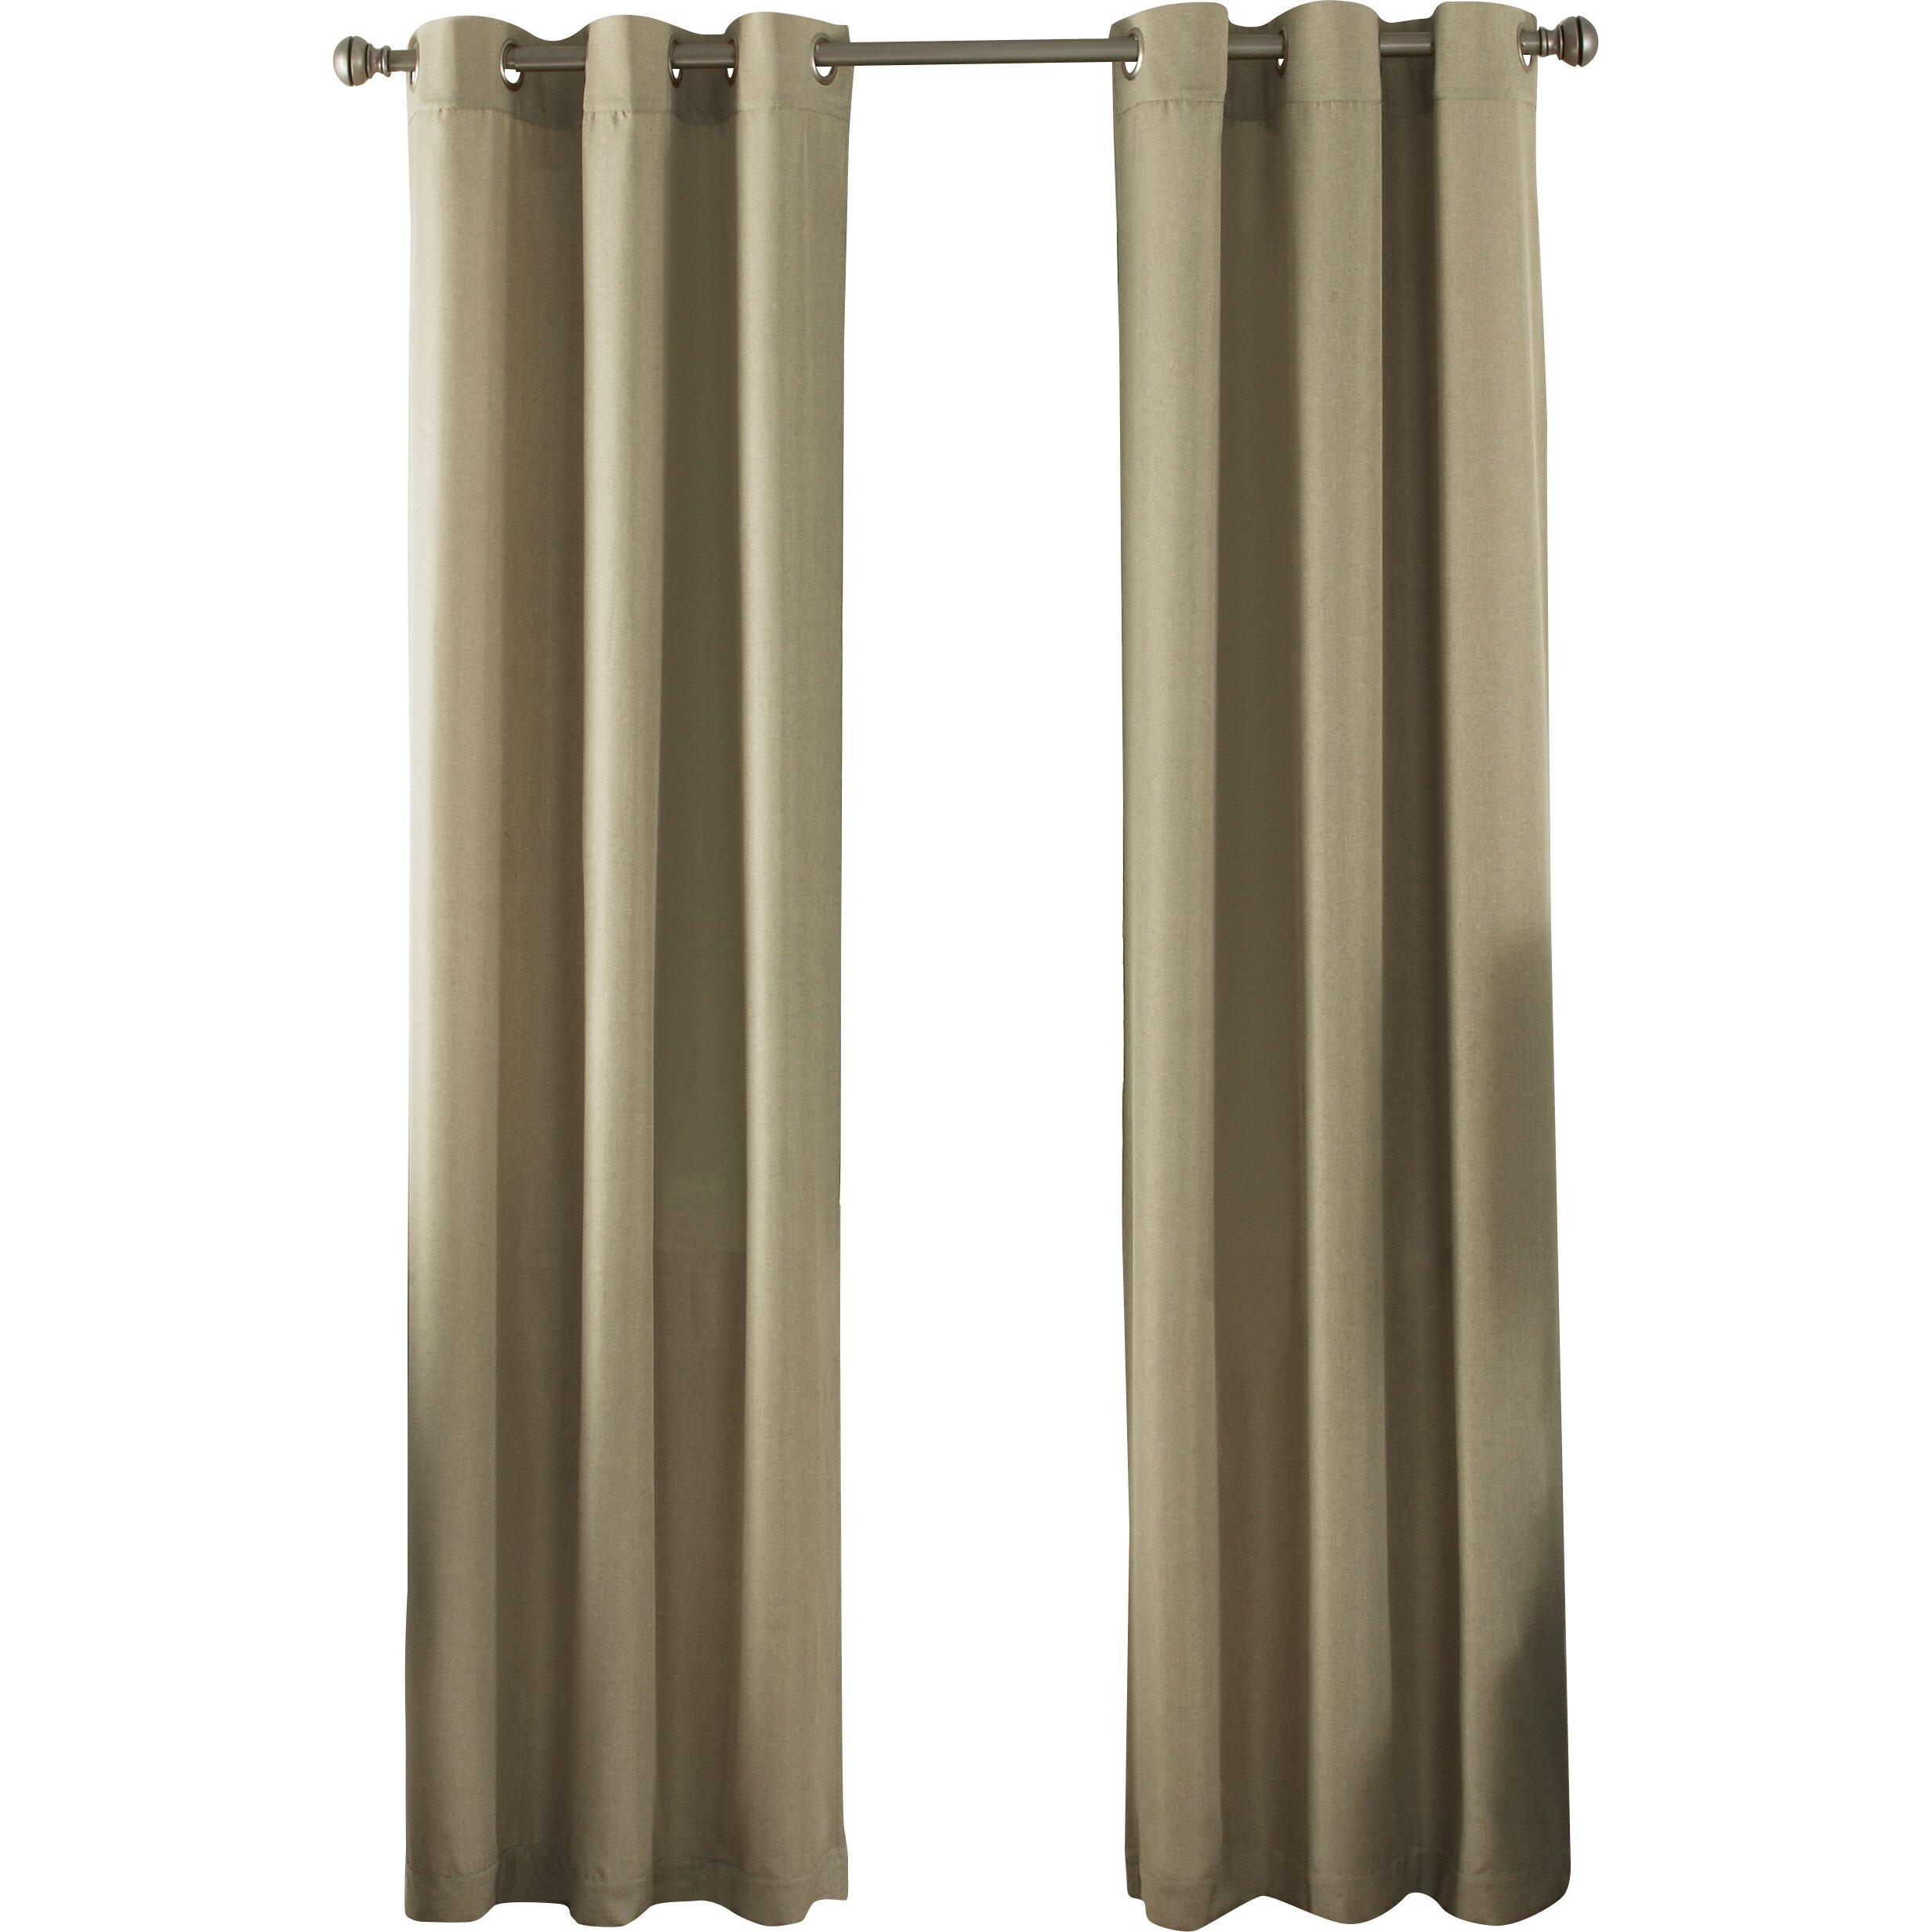 ardor home indoor outdoor thermal curtain panels reviews